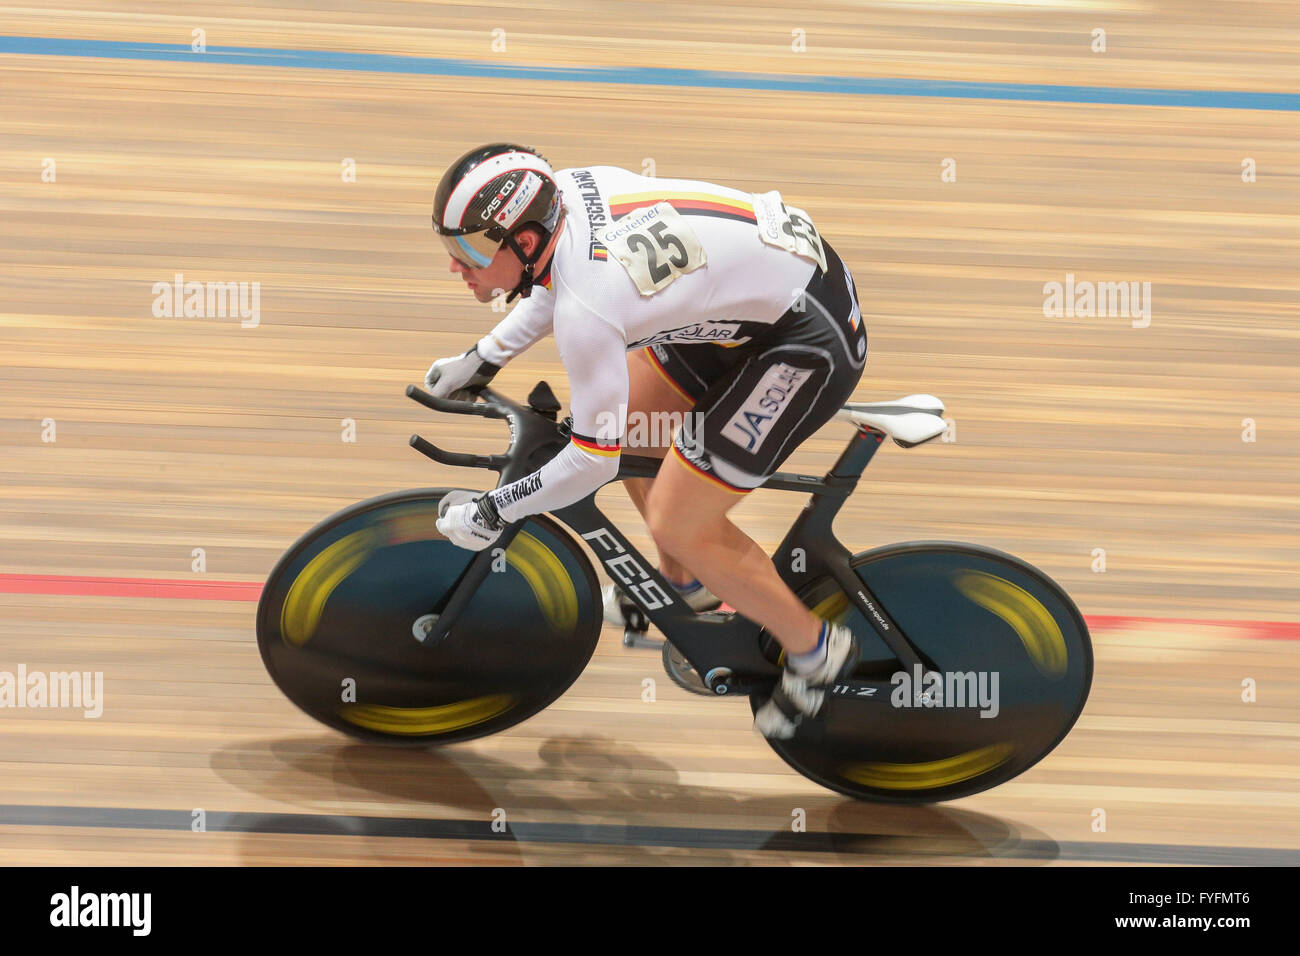 Tobias Wächter, Germany, places second in the men's elite kilometre time trial finals at the GP Vienna - Stock Image